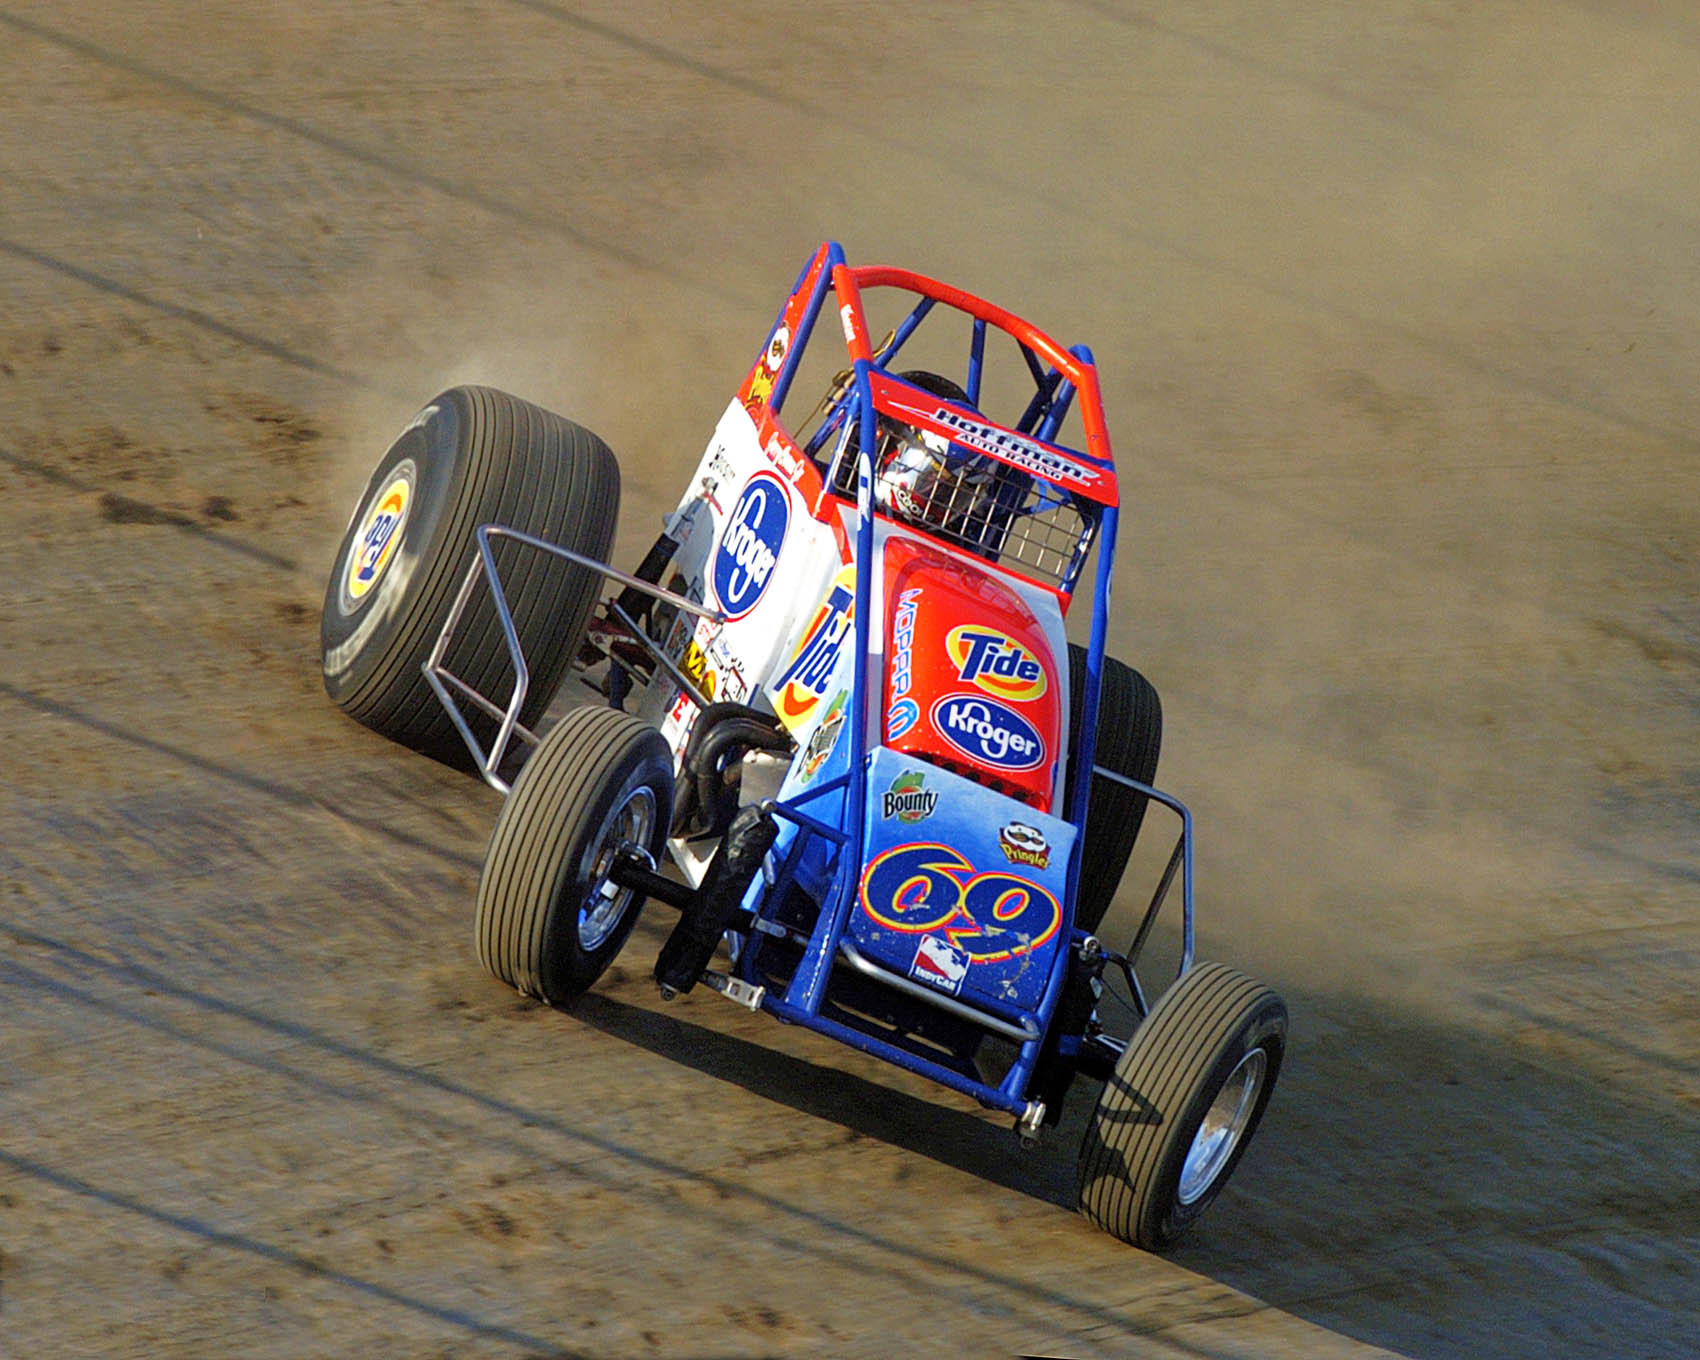 Jerry Coons Jr. at speed on the dirt in 2005.